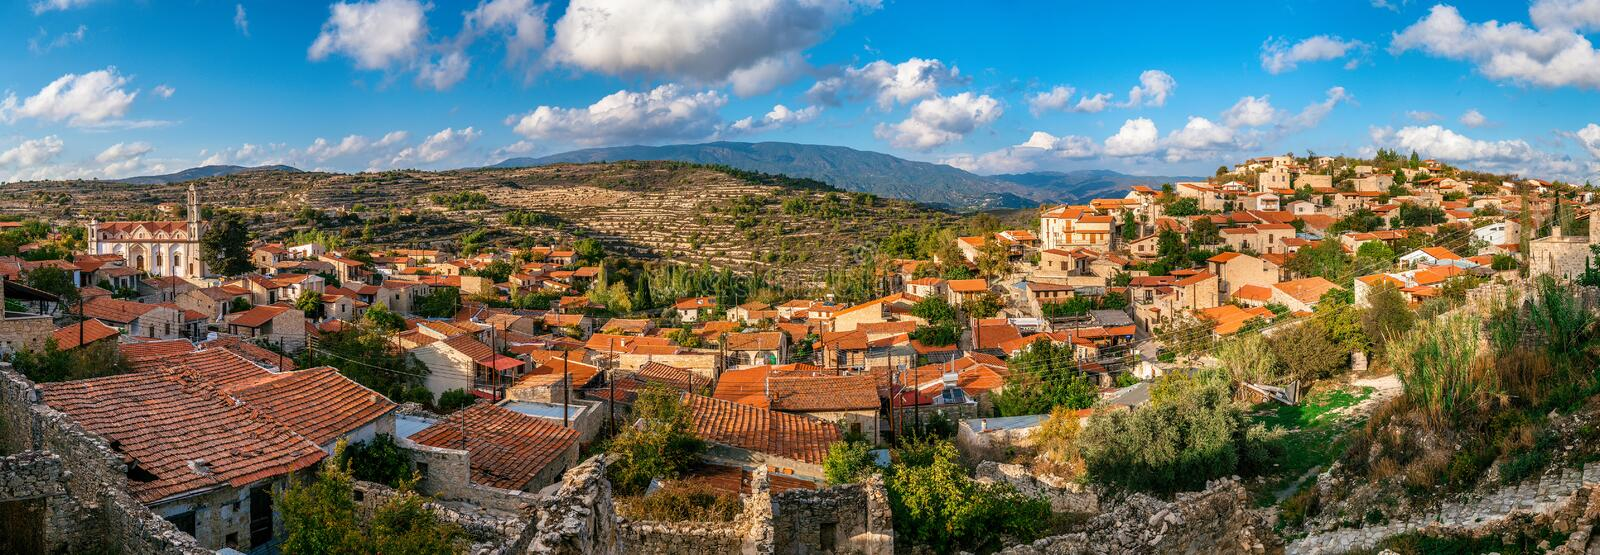 Lofou, a traditional mountain Cyprus village. Limassol District. Panorama stock images